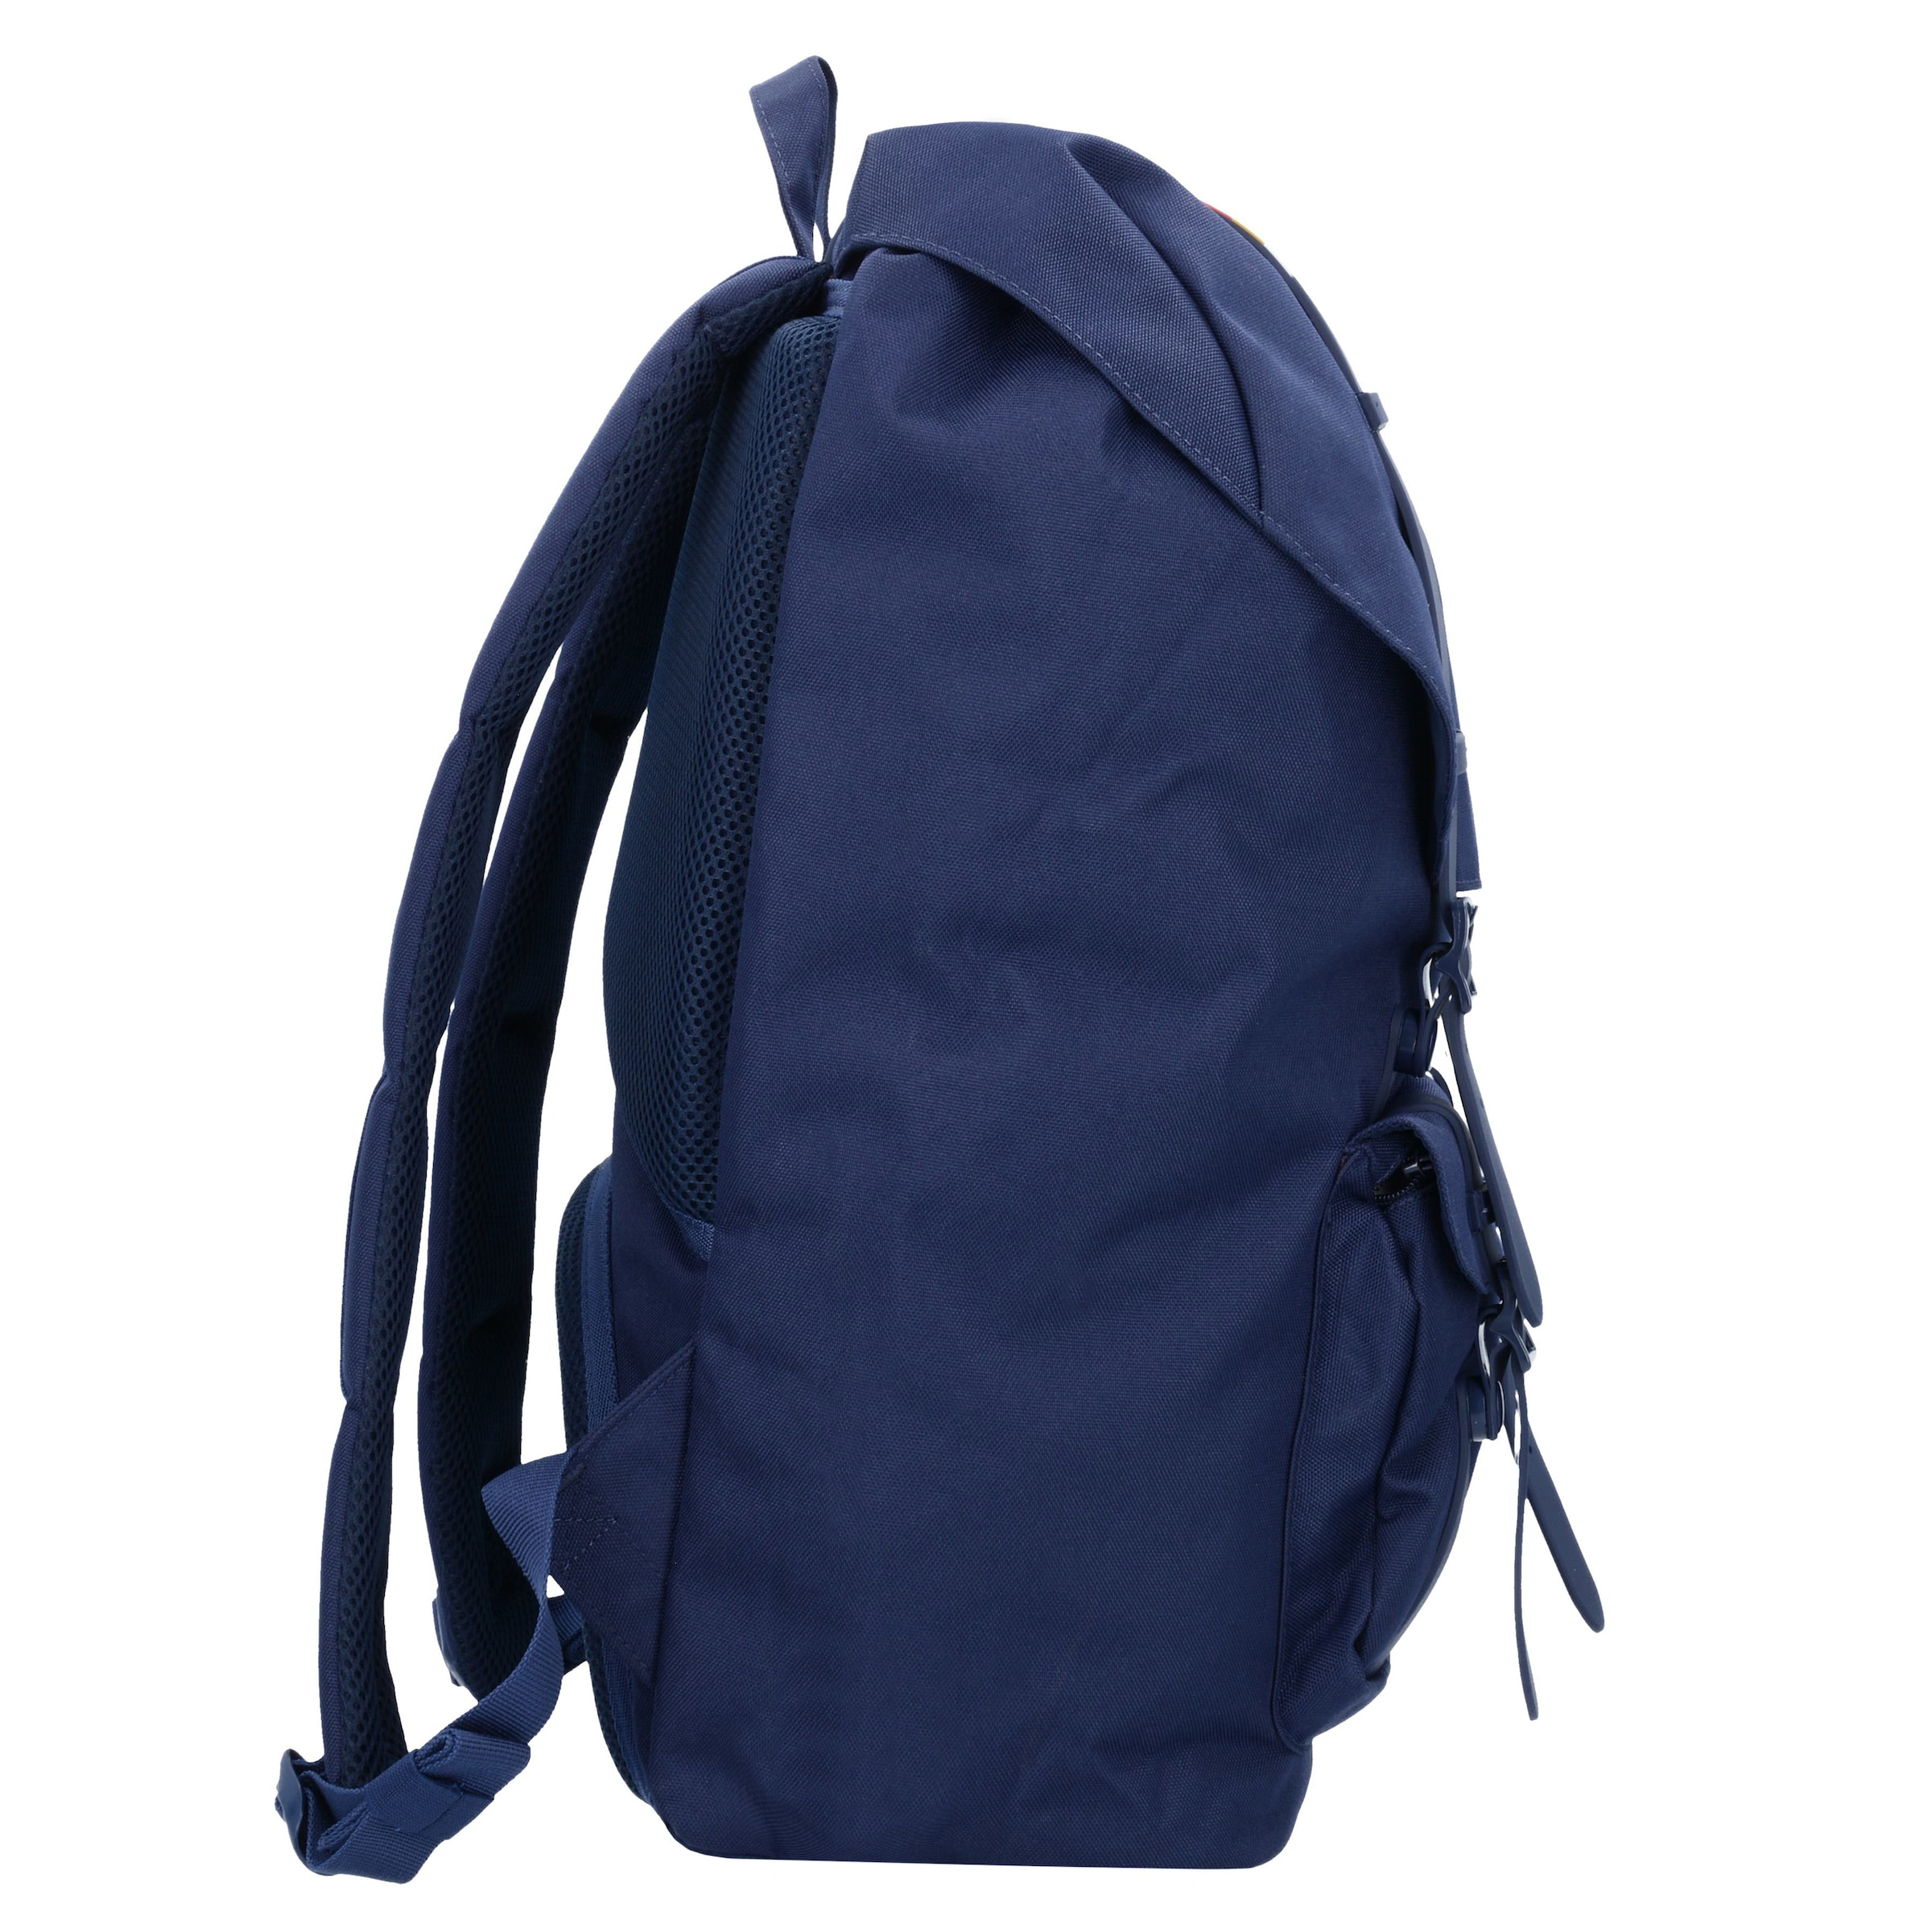 18 Herschel Herschel 52 Rucksack Little Laptopfach America cm Backpack Little wBZ5aIqw